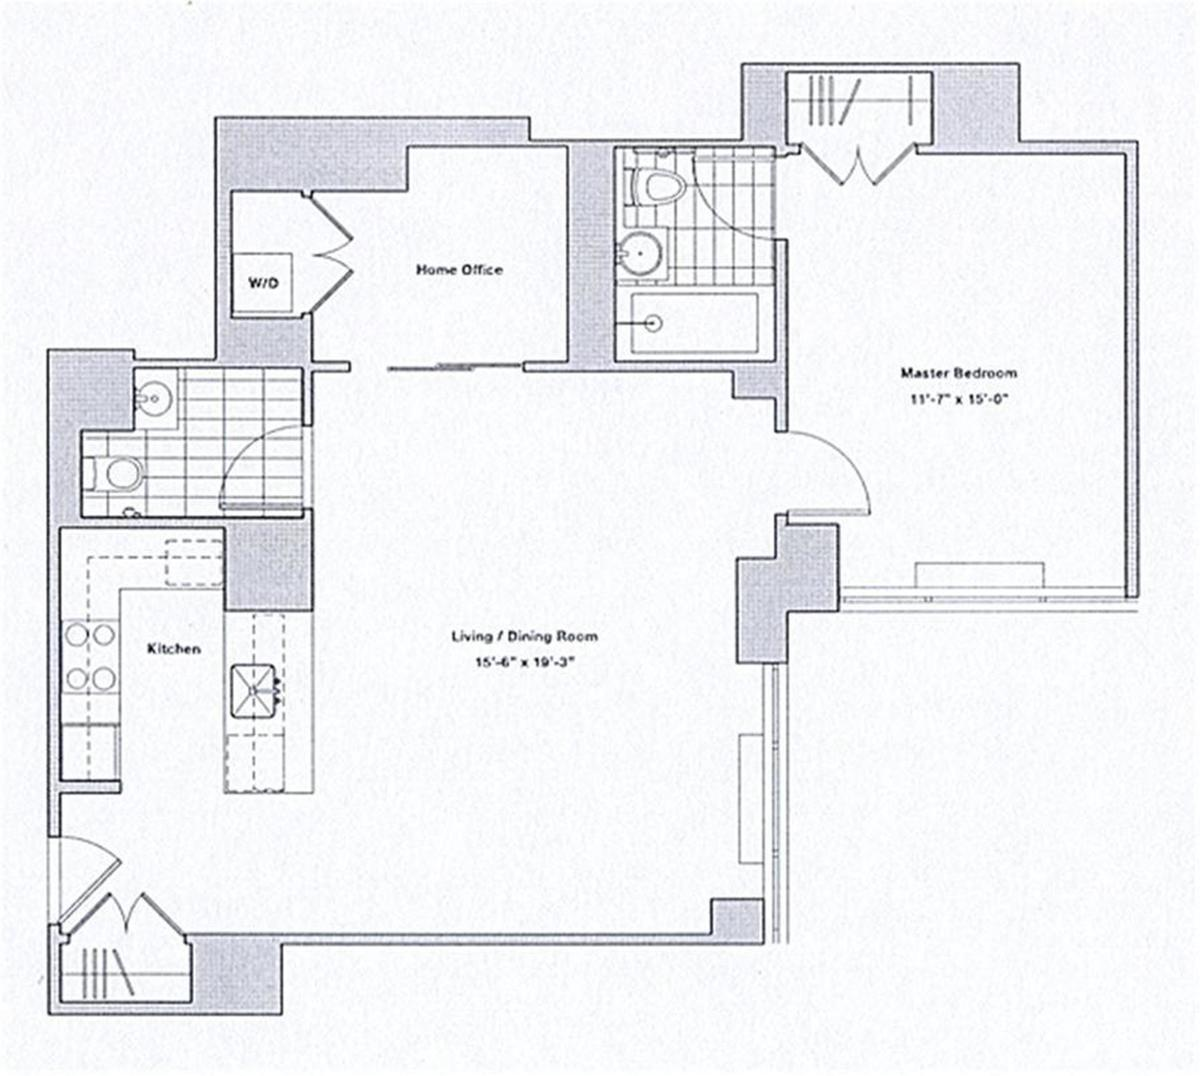 The sheffield 322 west 57th st nyc manhattan scout for Sheffield floor plan